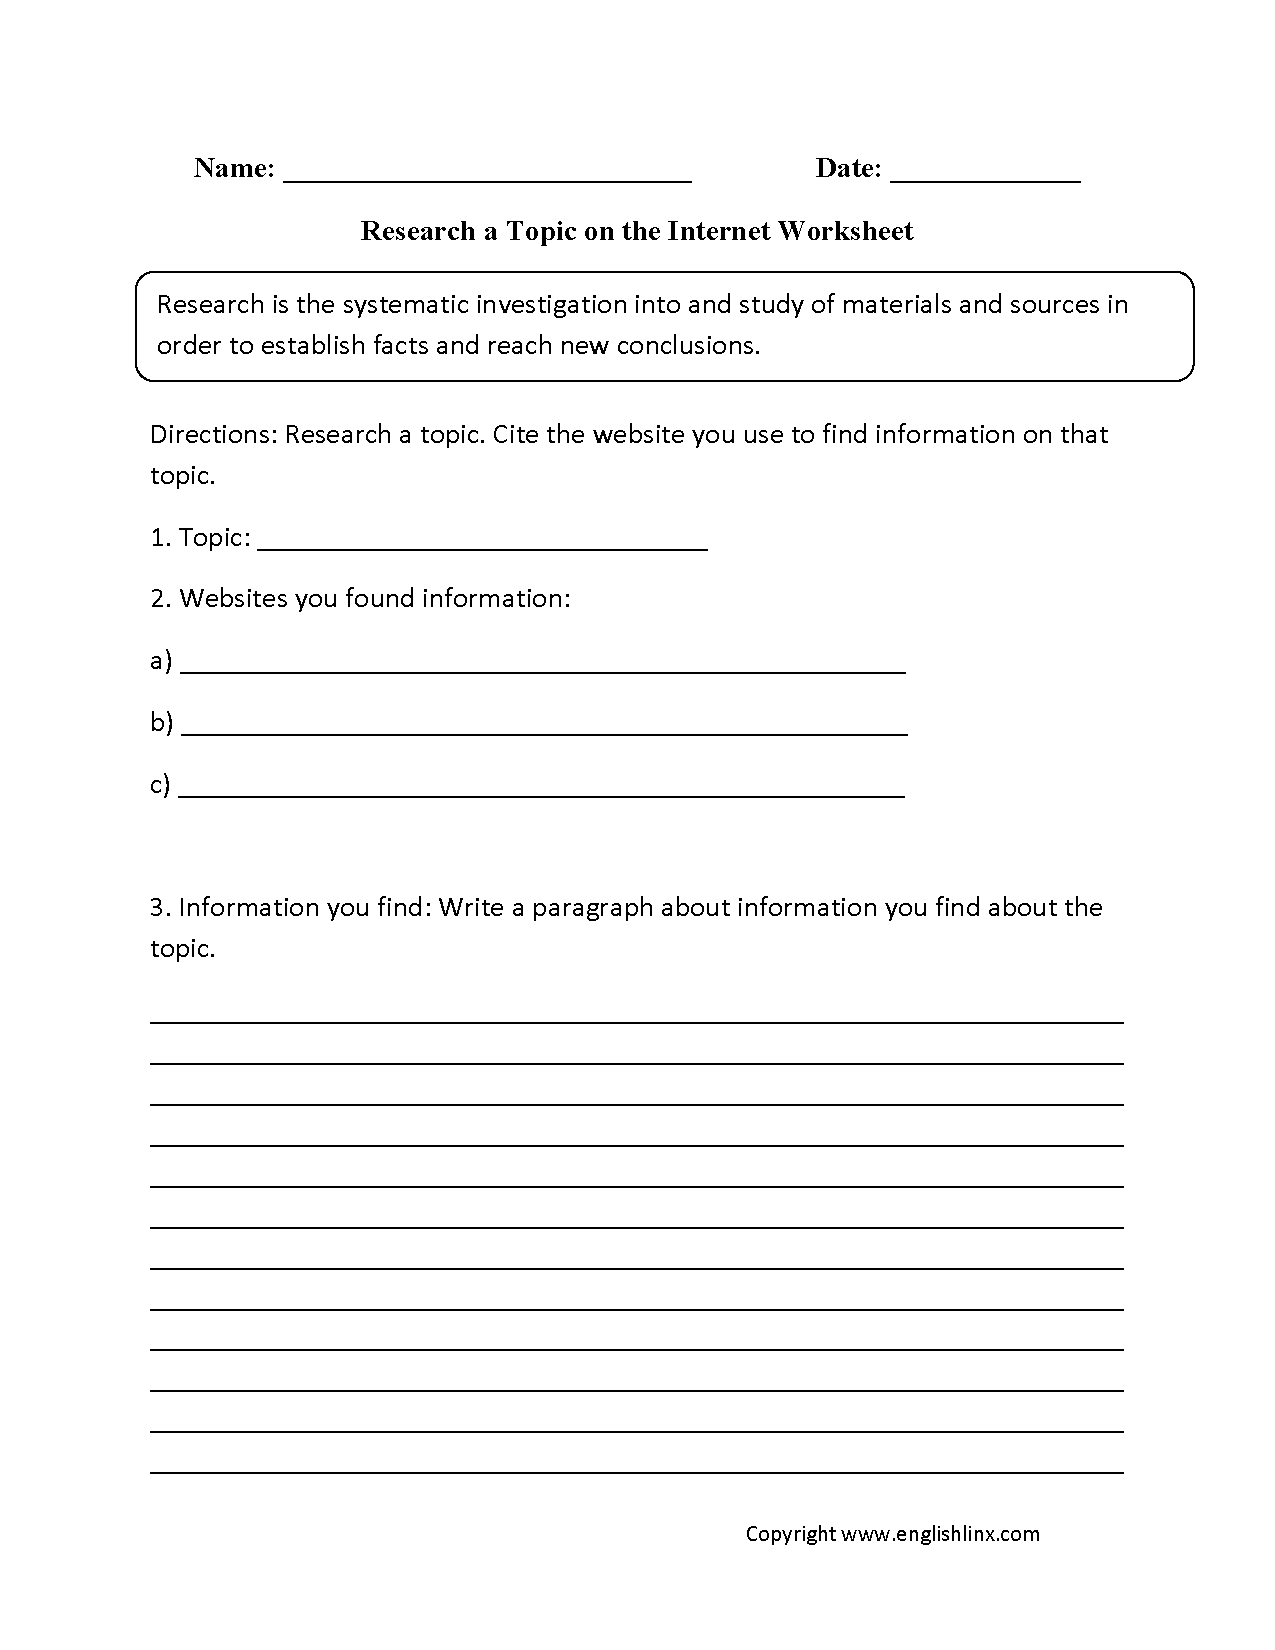 Aldiablosus  Seductive Englishlinxcom  Research Worksheets With Luxury On The Internet Worksheet With Astounding Kindergarten Sight Words Worksheets Free Also Super Teacher Worksheets Review In Addition Multiplication Worksheets  Digit By  Digit And Learning Abc Worksheets Free As Well As Sh Ch Th Wh Worksheets Additionally Decimal Grid Worksheet From Englishlinxcom With Aldiablosus  Luxury Englishlinxcom  Research Worksheets With Astounding On The Internet Worksheet And Seductive Kindergarten Sight Words Worksheets Free Also Super Teacher Worksheets Review In Addition Multiplication Worksheets  Digit By  Digit From Englishlinxcom